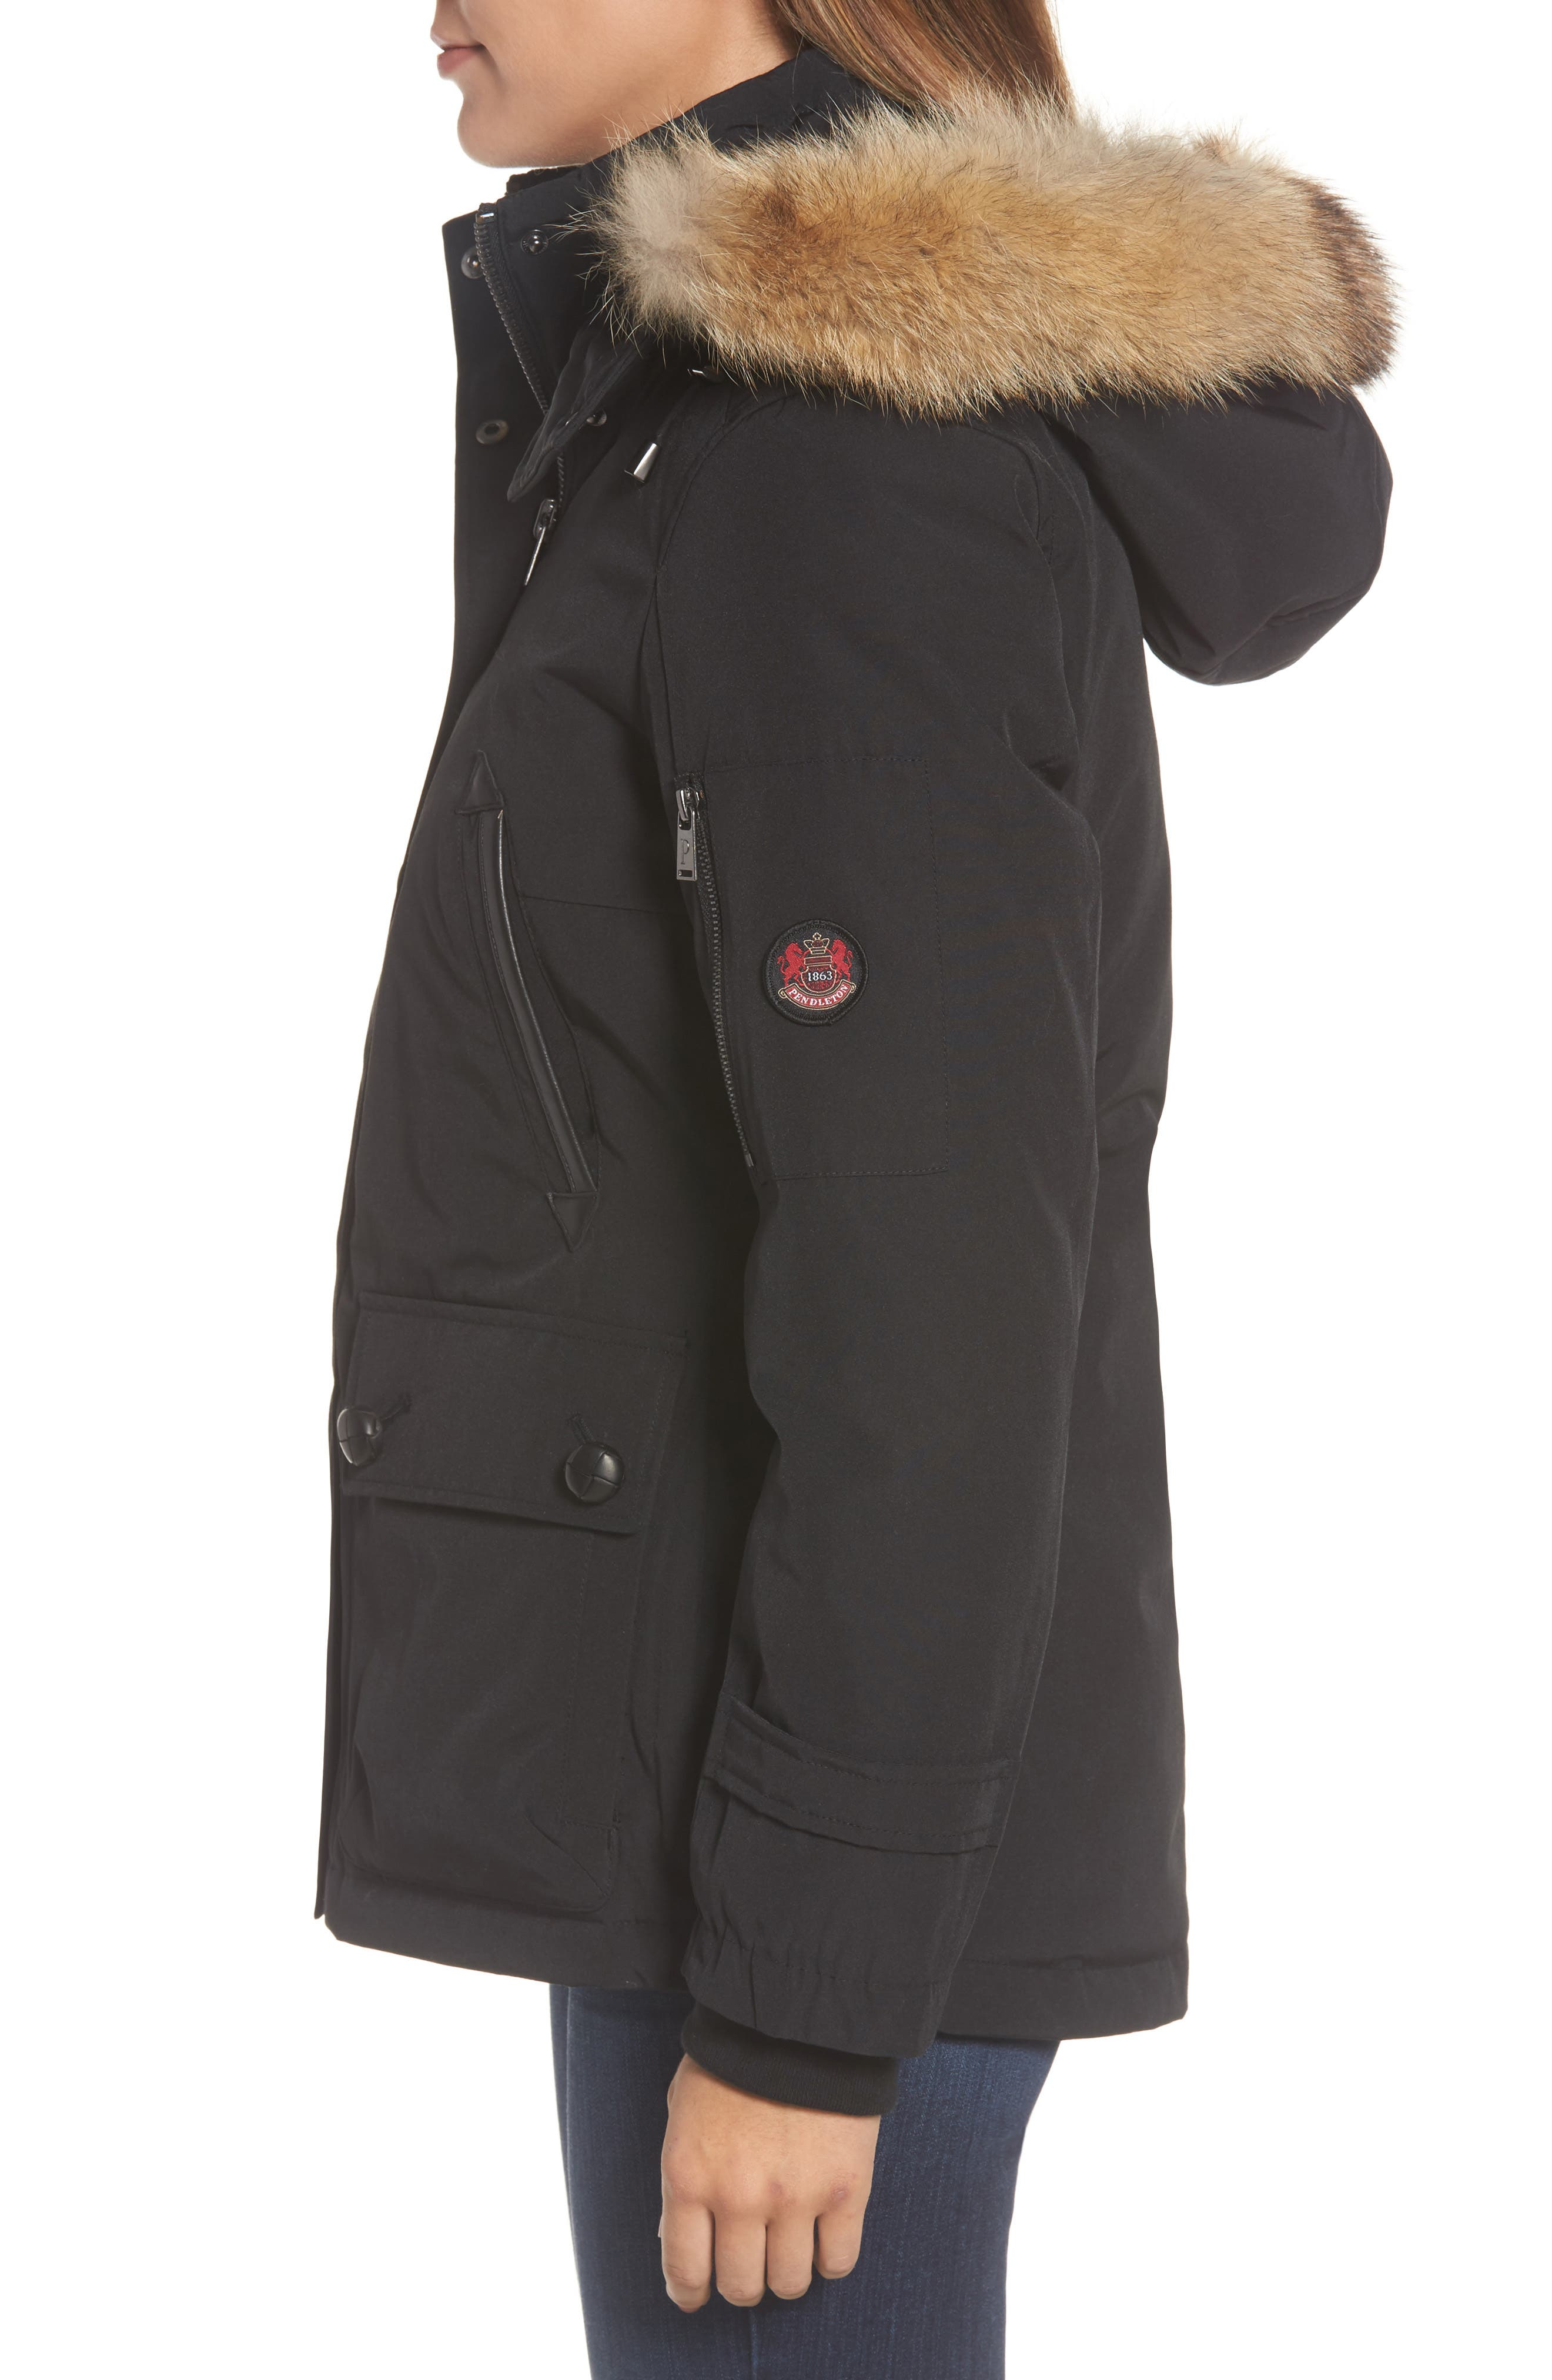 Bachelor Water Repellent Hooded Down Parka with Genuine Coyote Fur Trim,                             Alternate thumbnail 9, color,